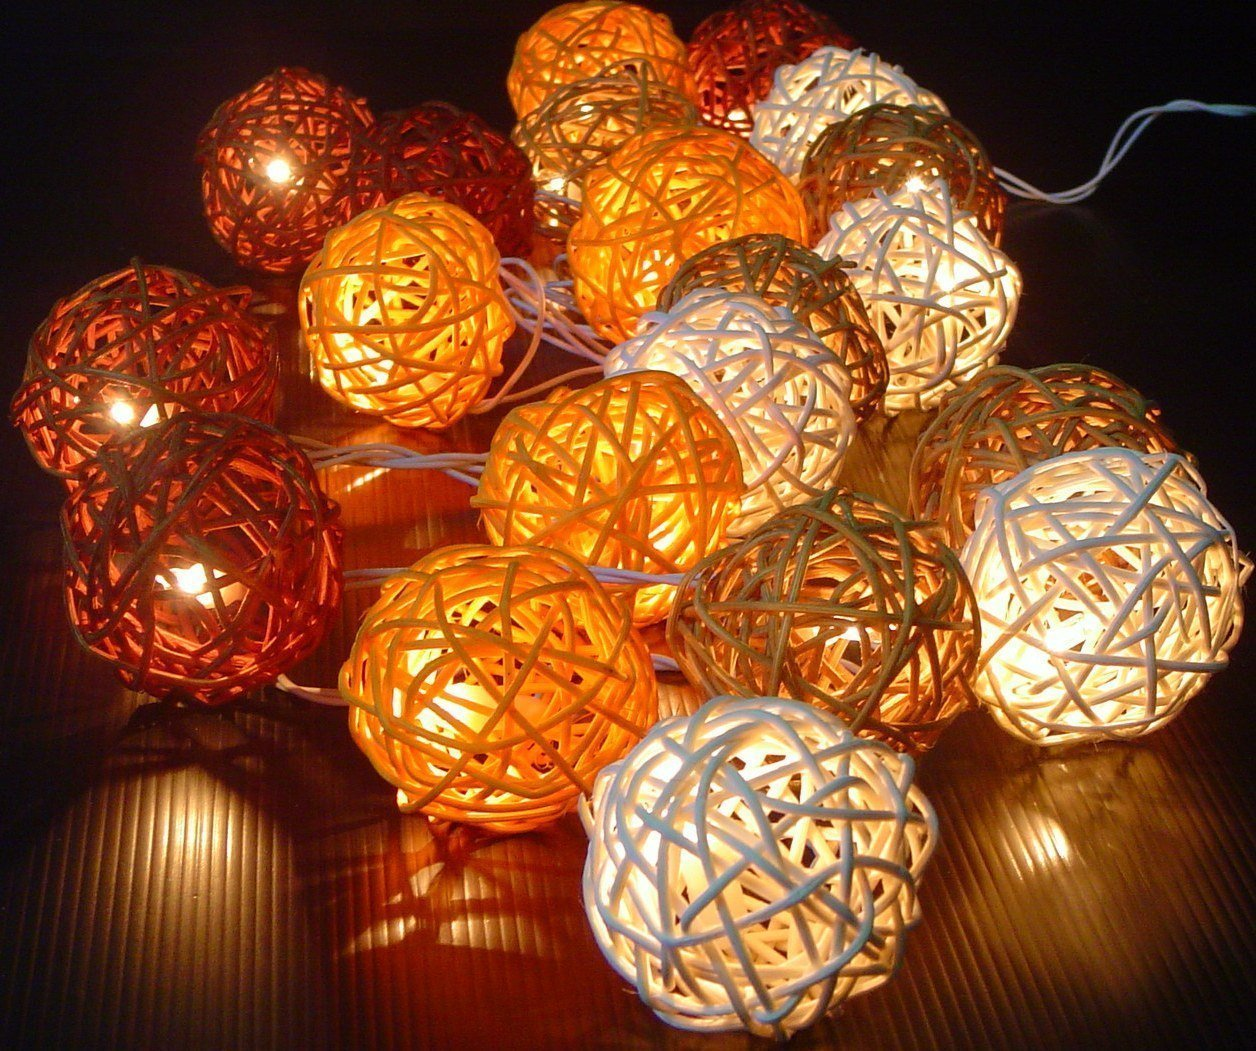 Storm Autumn Browns Rattan Cane Battery Powered Led Wooden Ball Fairy Light String 3m (9.9 Feet) Long by Thai Decorated by Thai Decorated